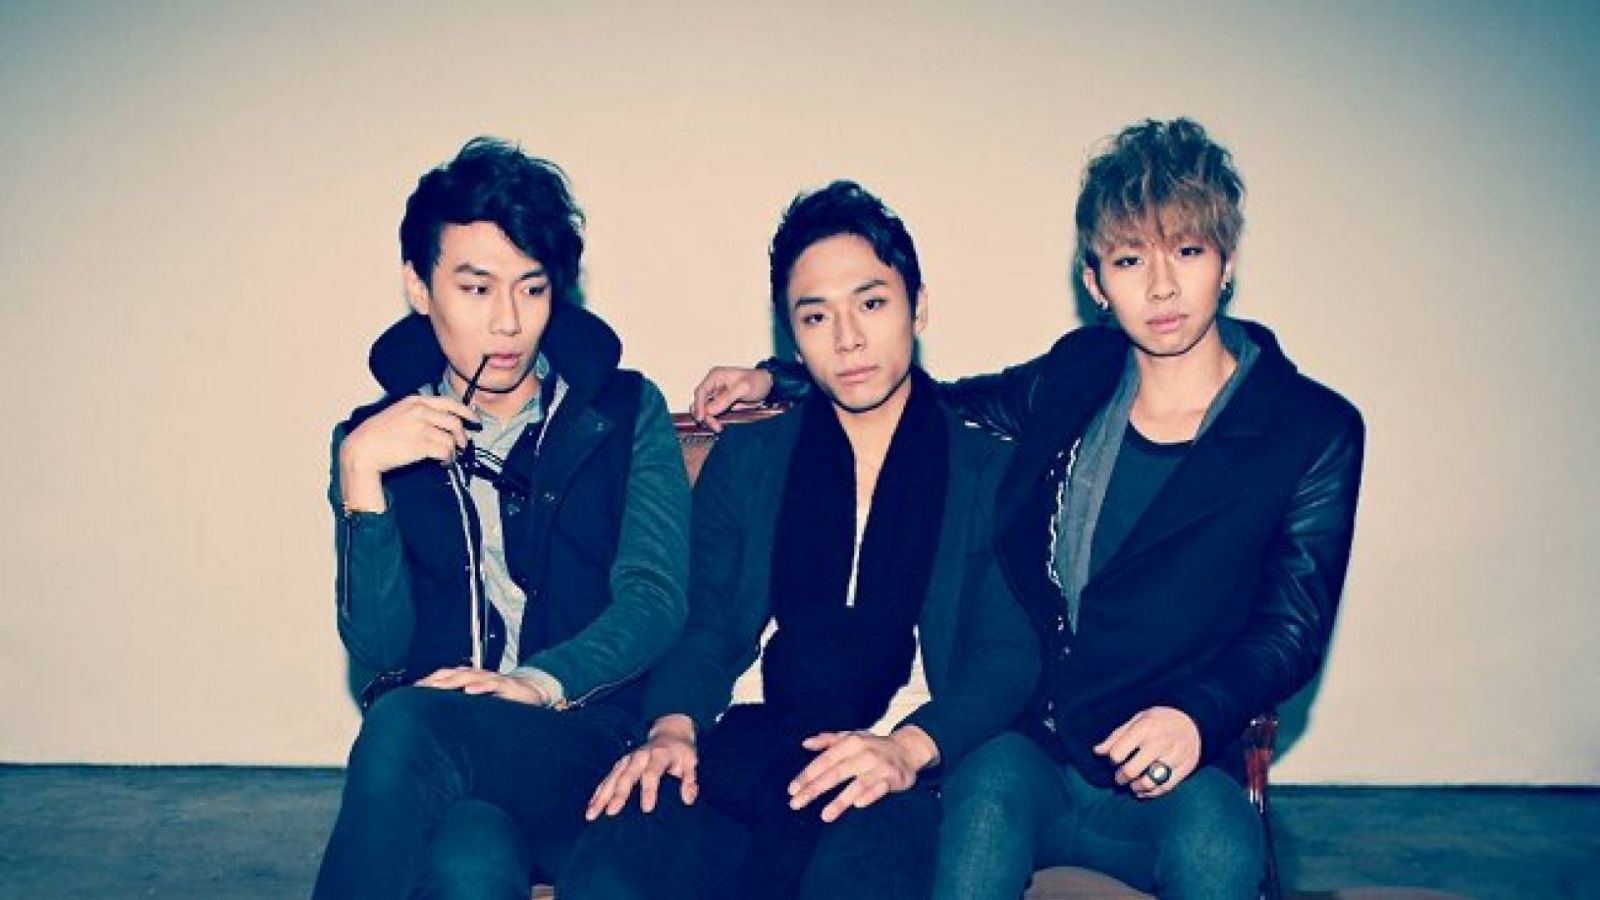 Interview avec [band:fine] © [band: fine]